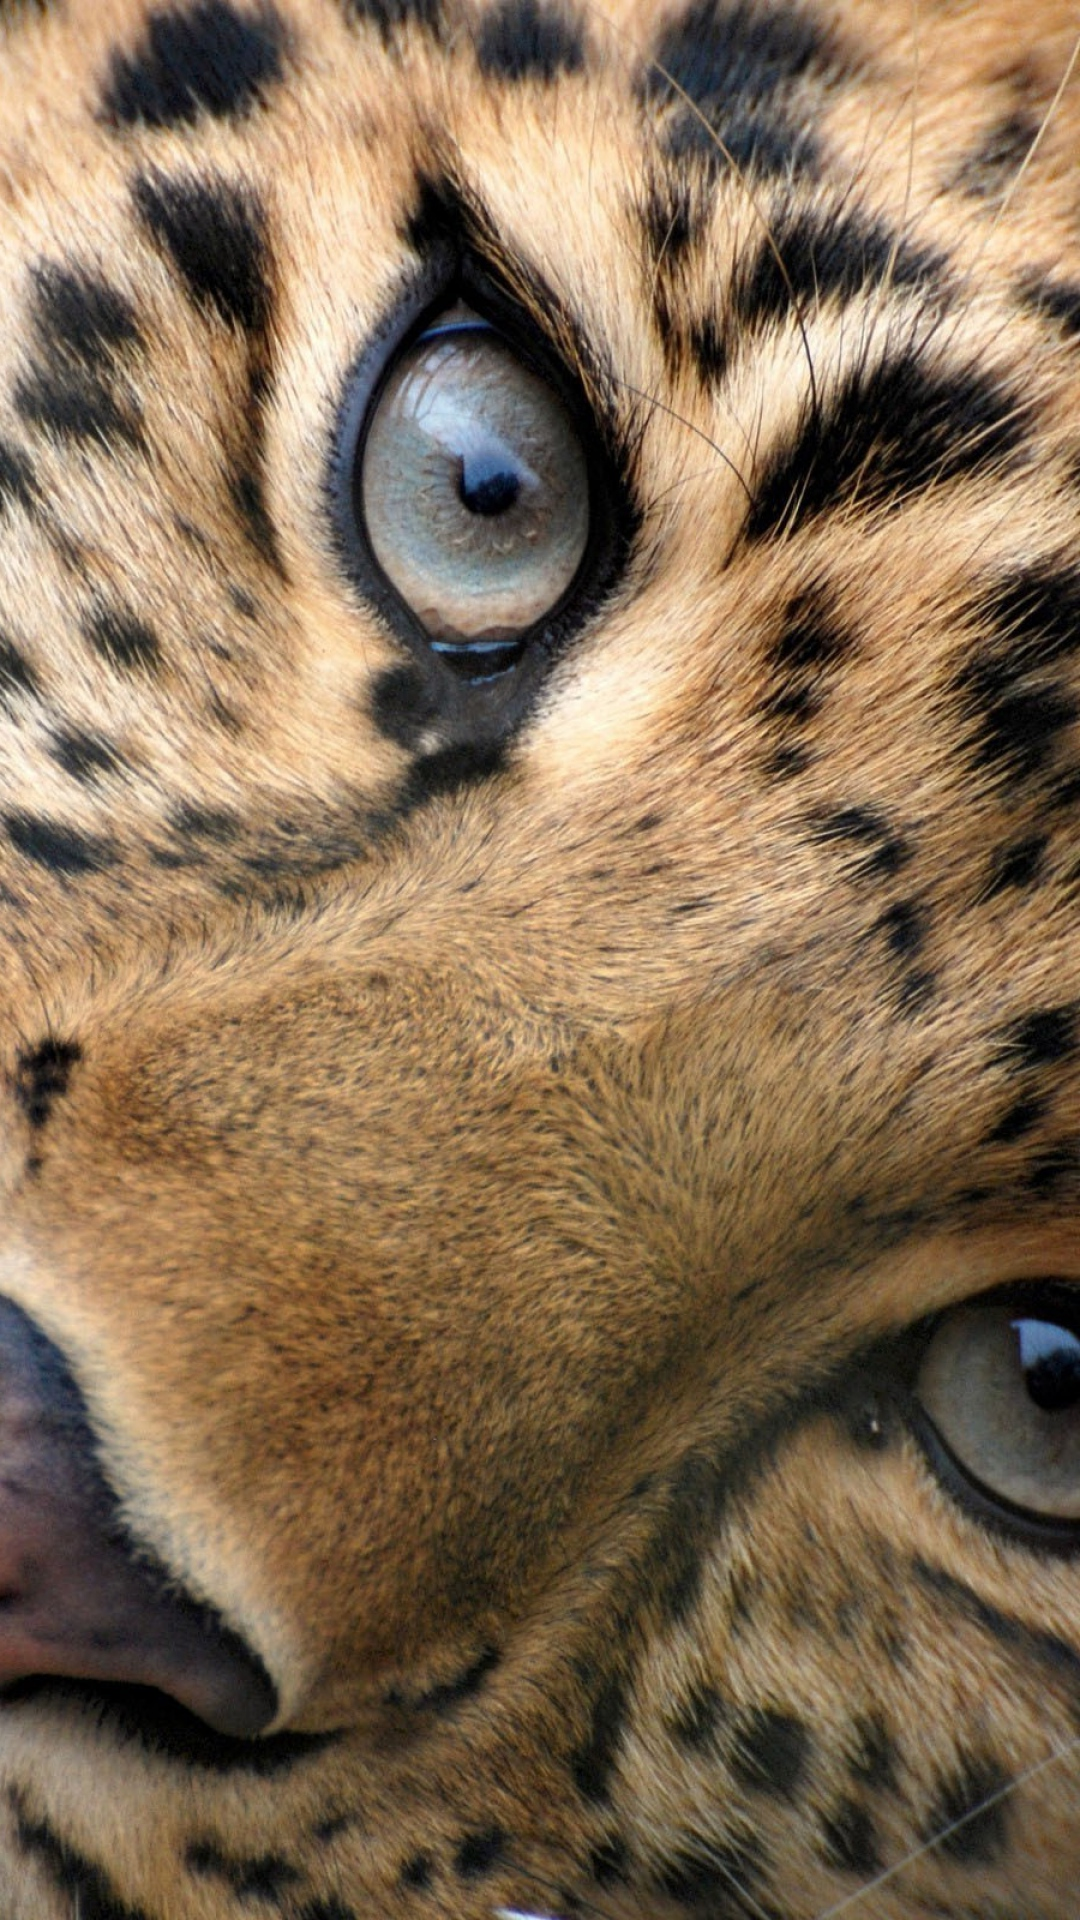 Big cat eyes   Best htc one wallpapers and easy to download 1080x1920